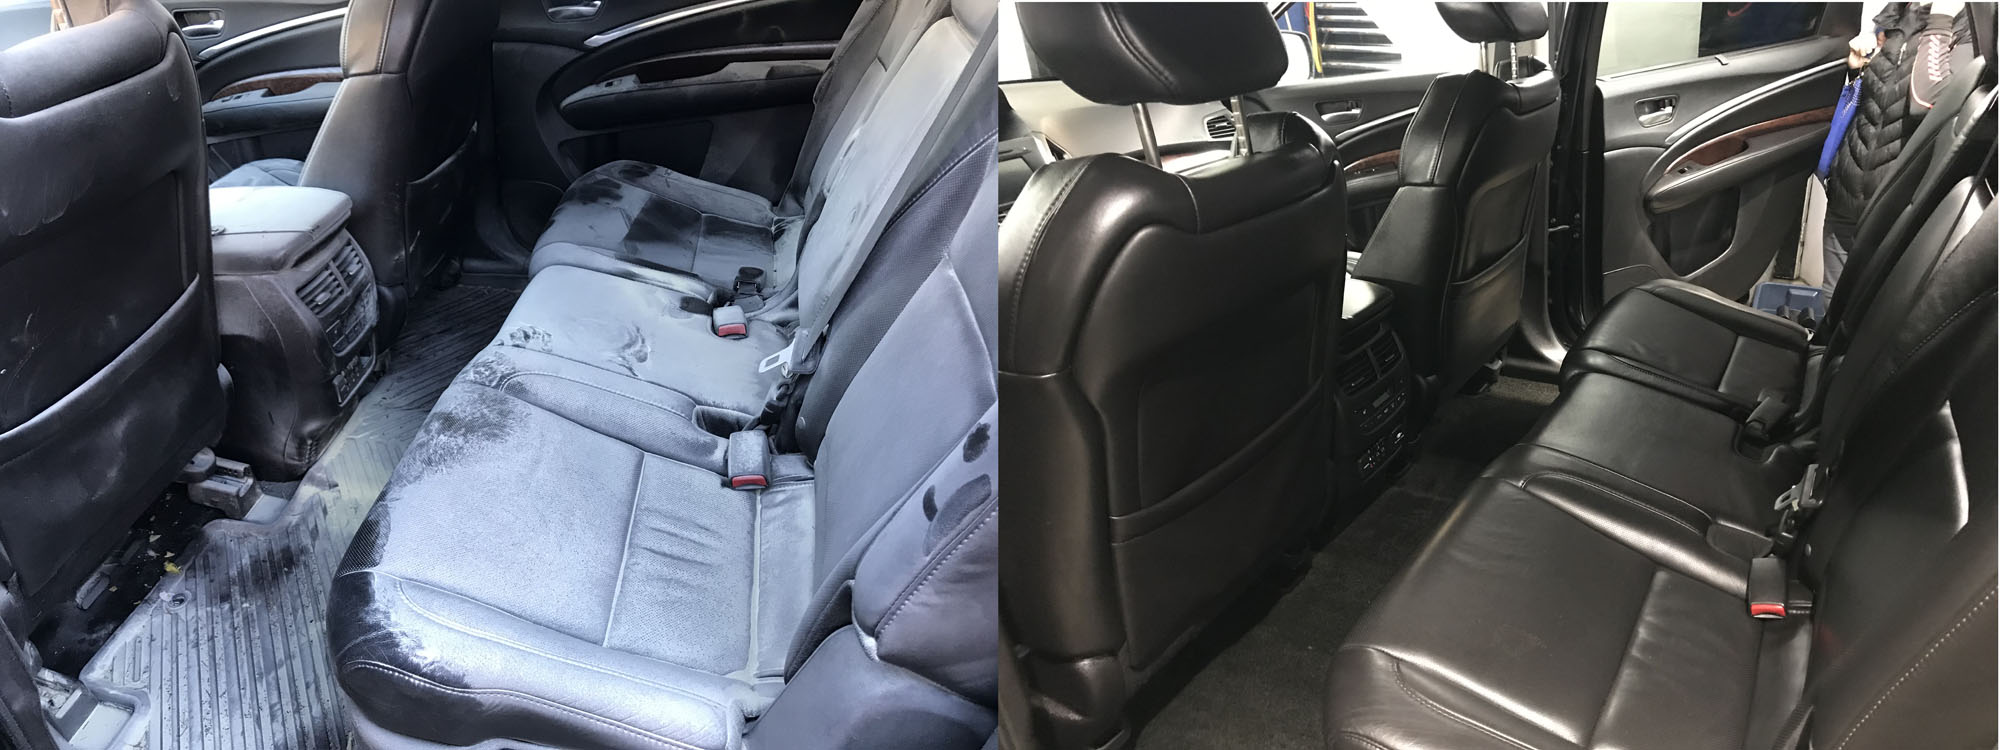 Acura MDX Extinguisher before and After Dec 04 2018 (2).jpg